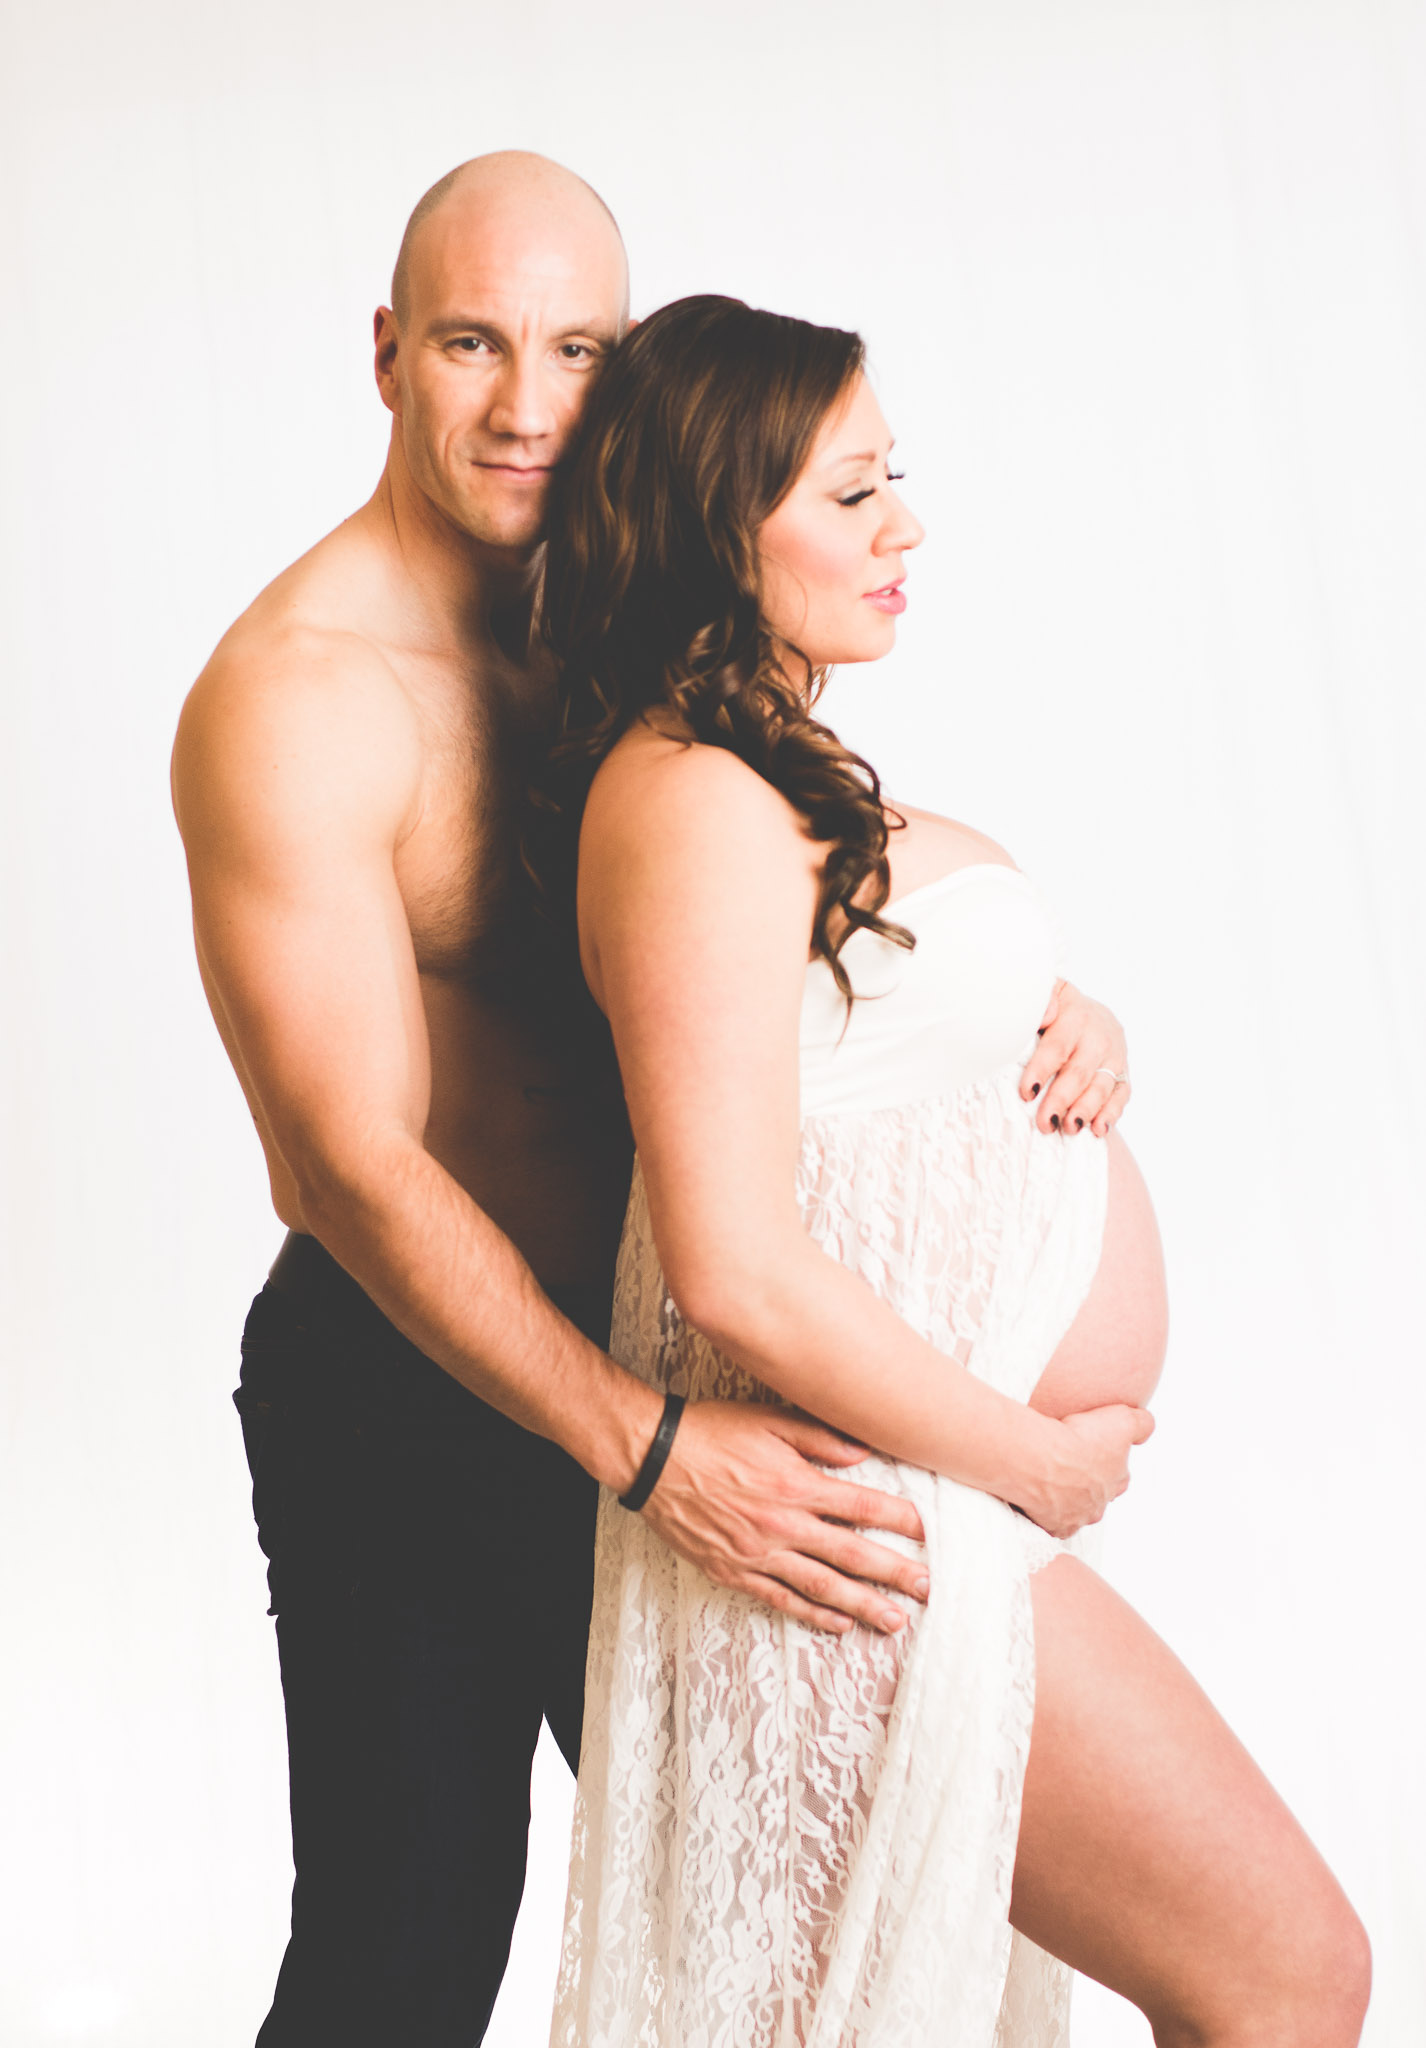 Studio city maternity photographer